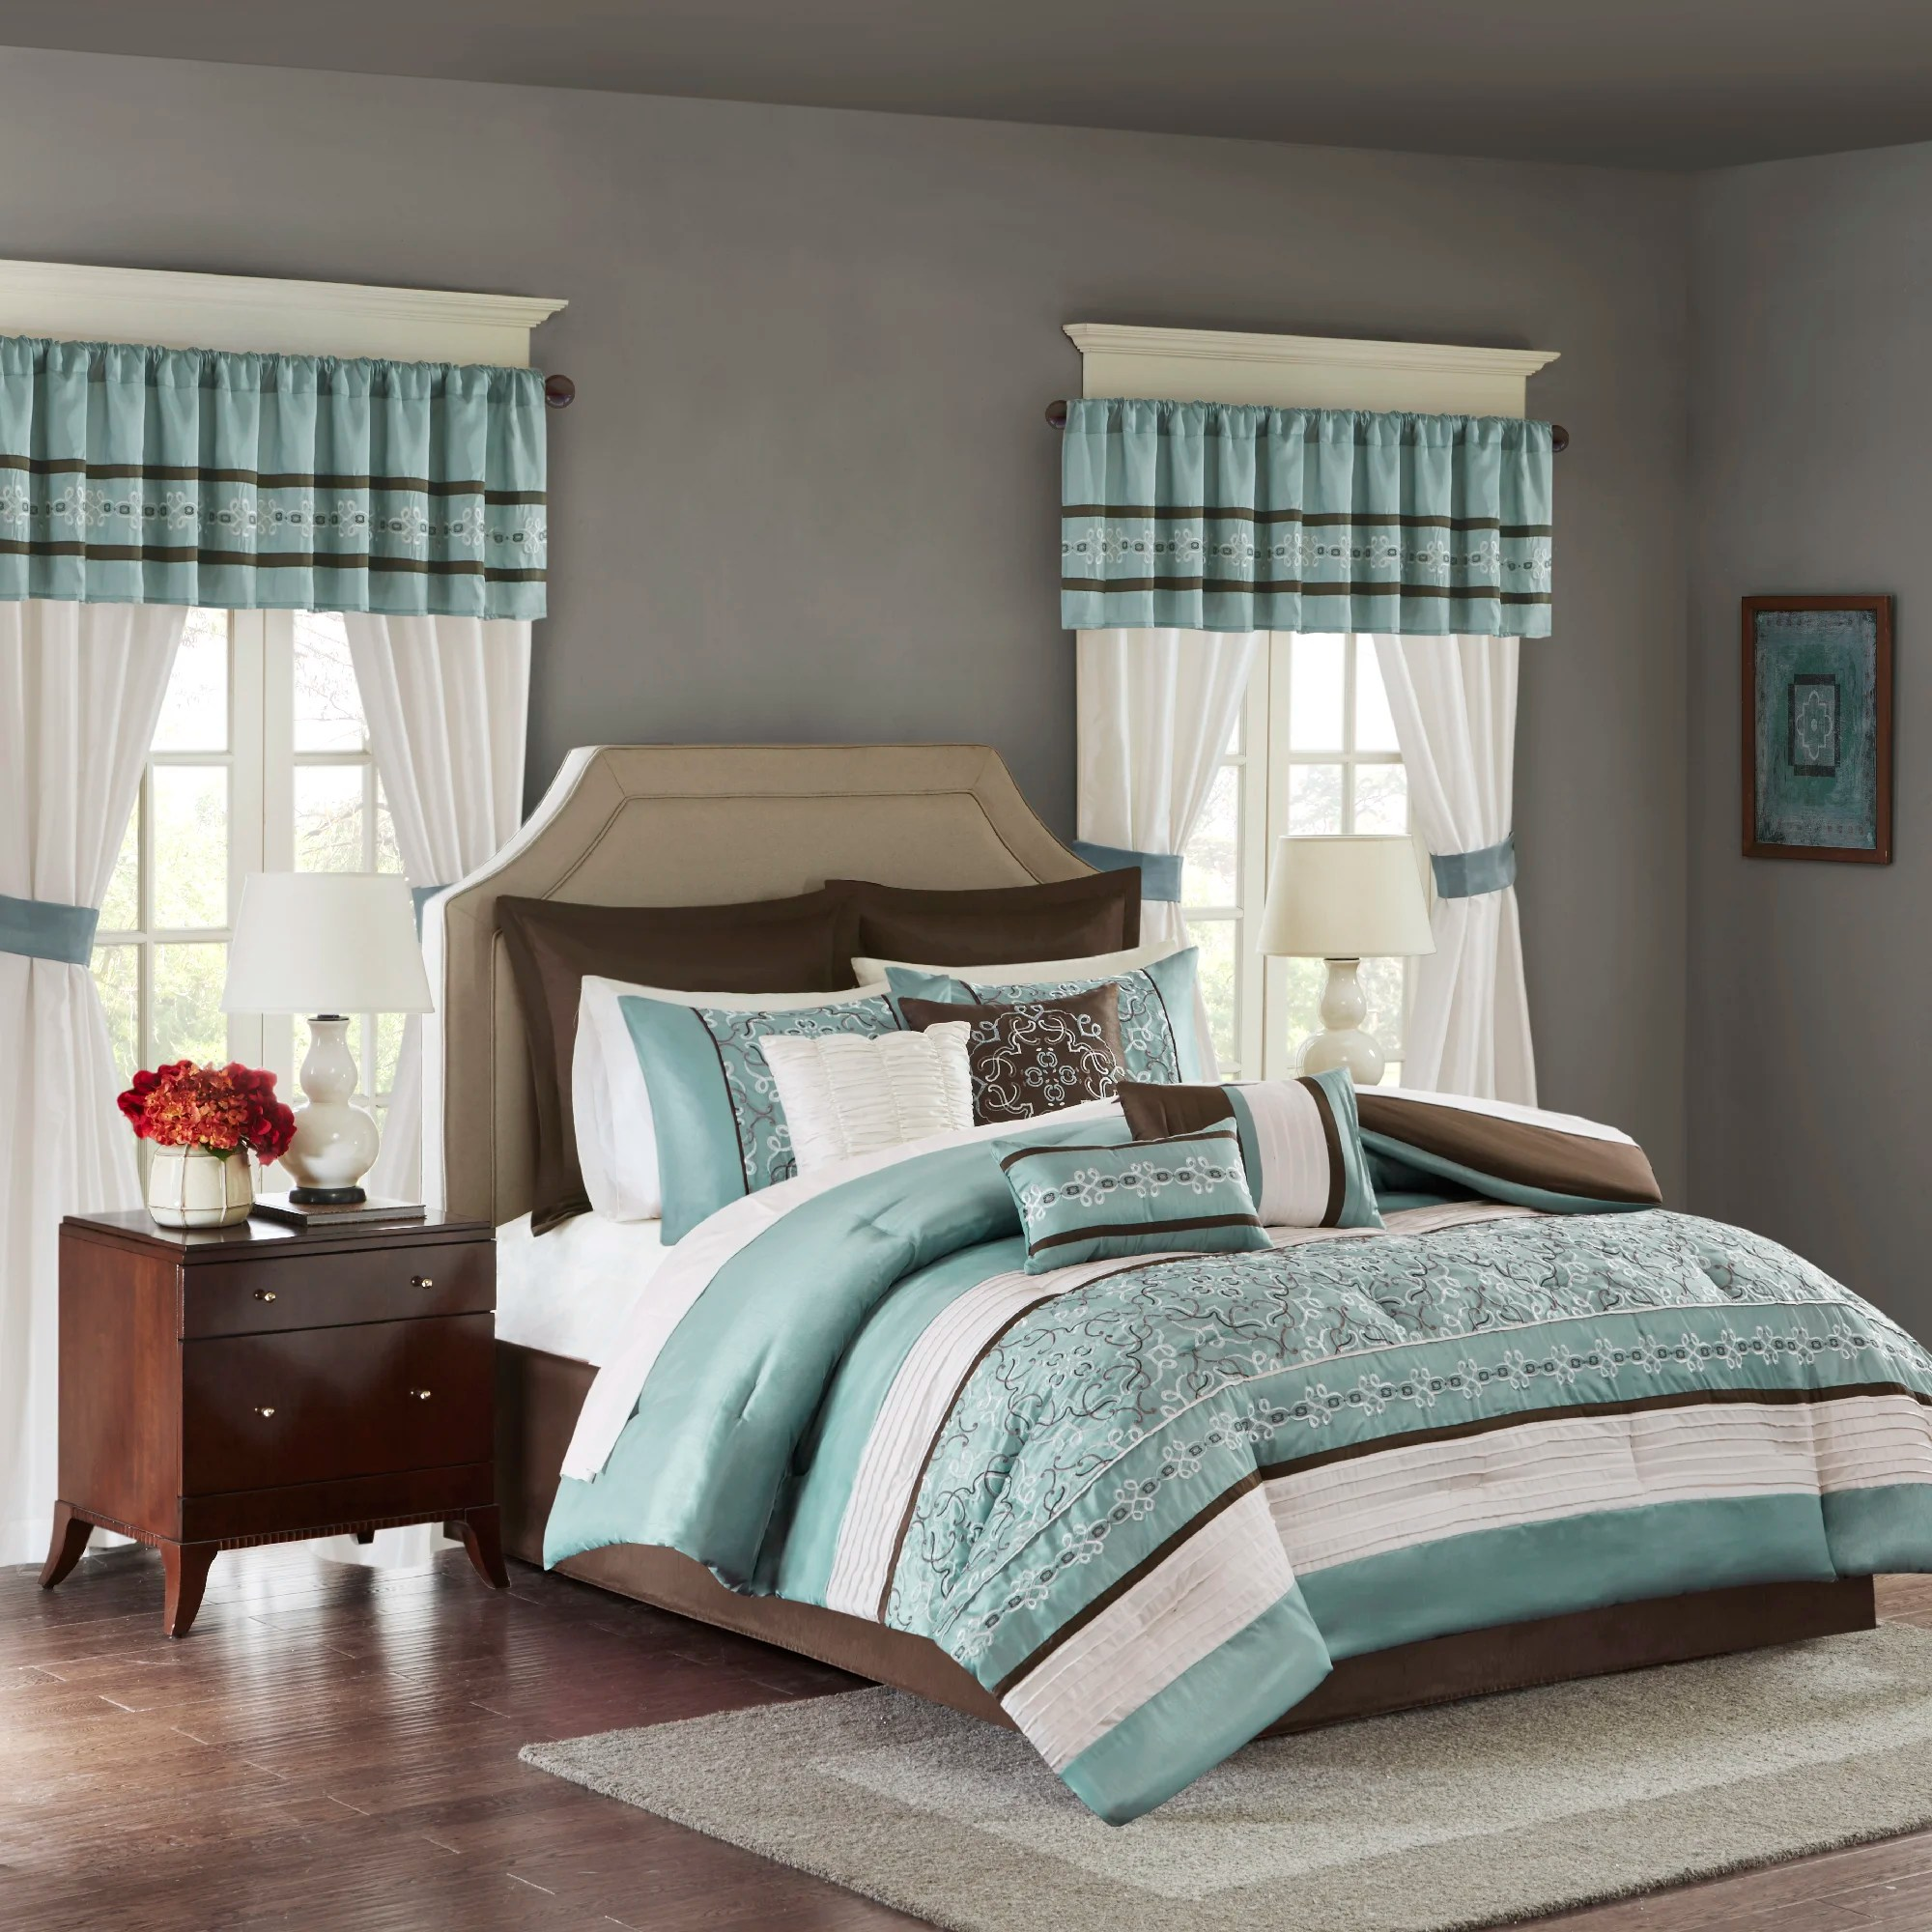 bedding sets with curtains wayfair